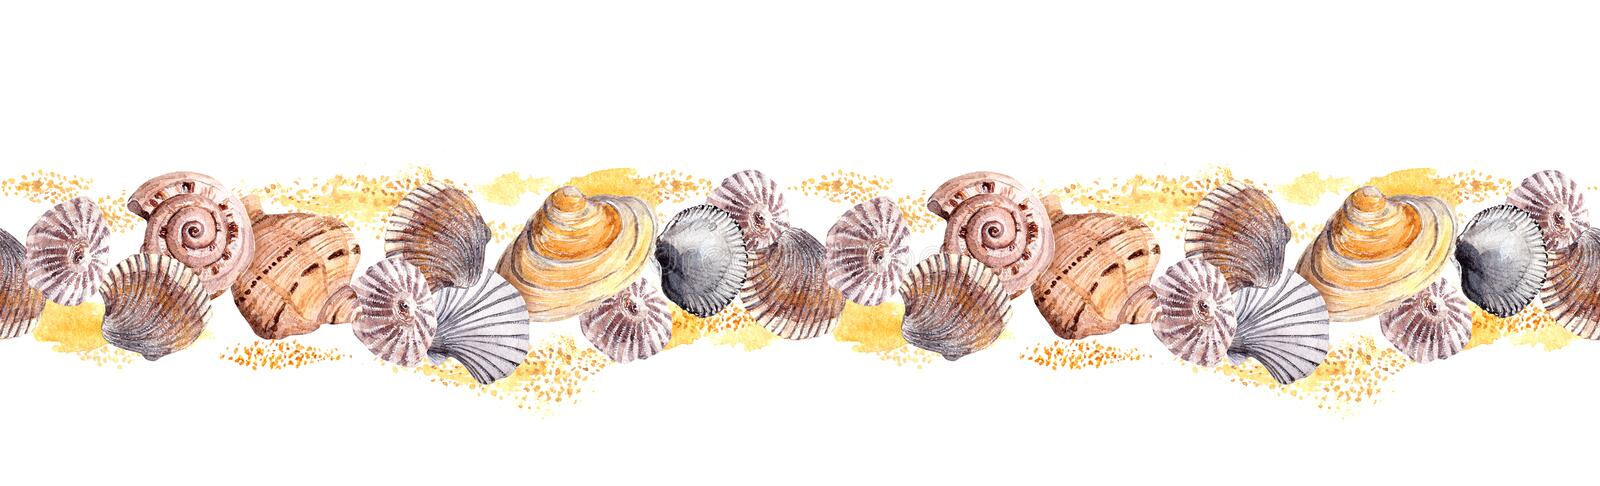 Seamless border ribbon with seashells in sand. Watercolor frame. Sea shell swatch on white background. Watercolor drawing stock illustration